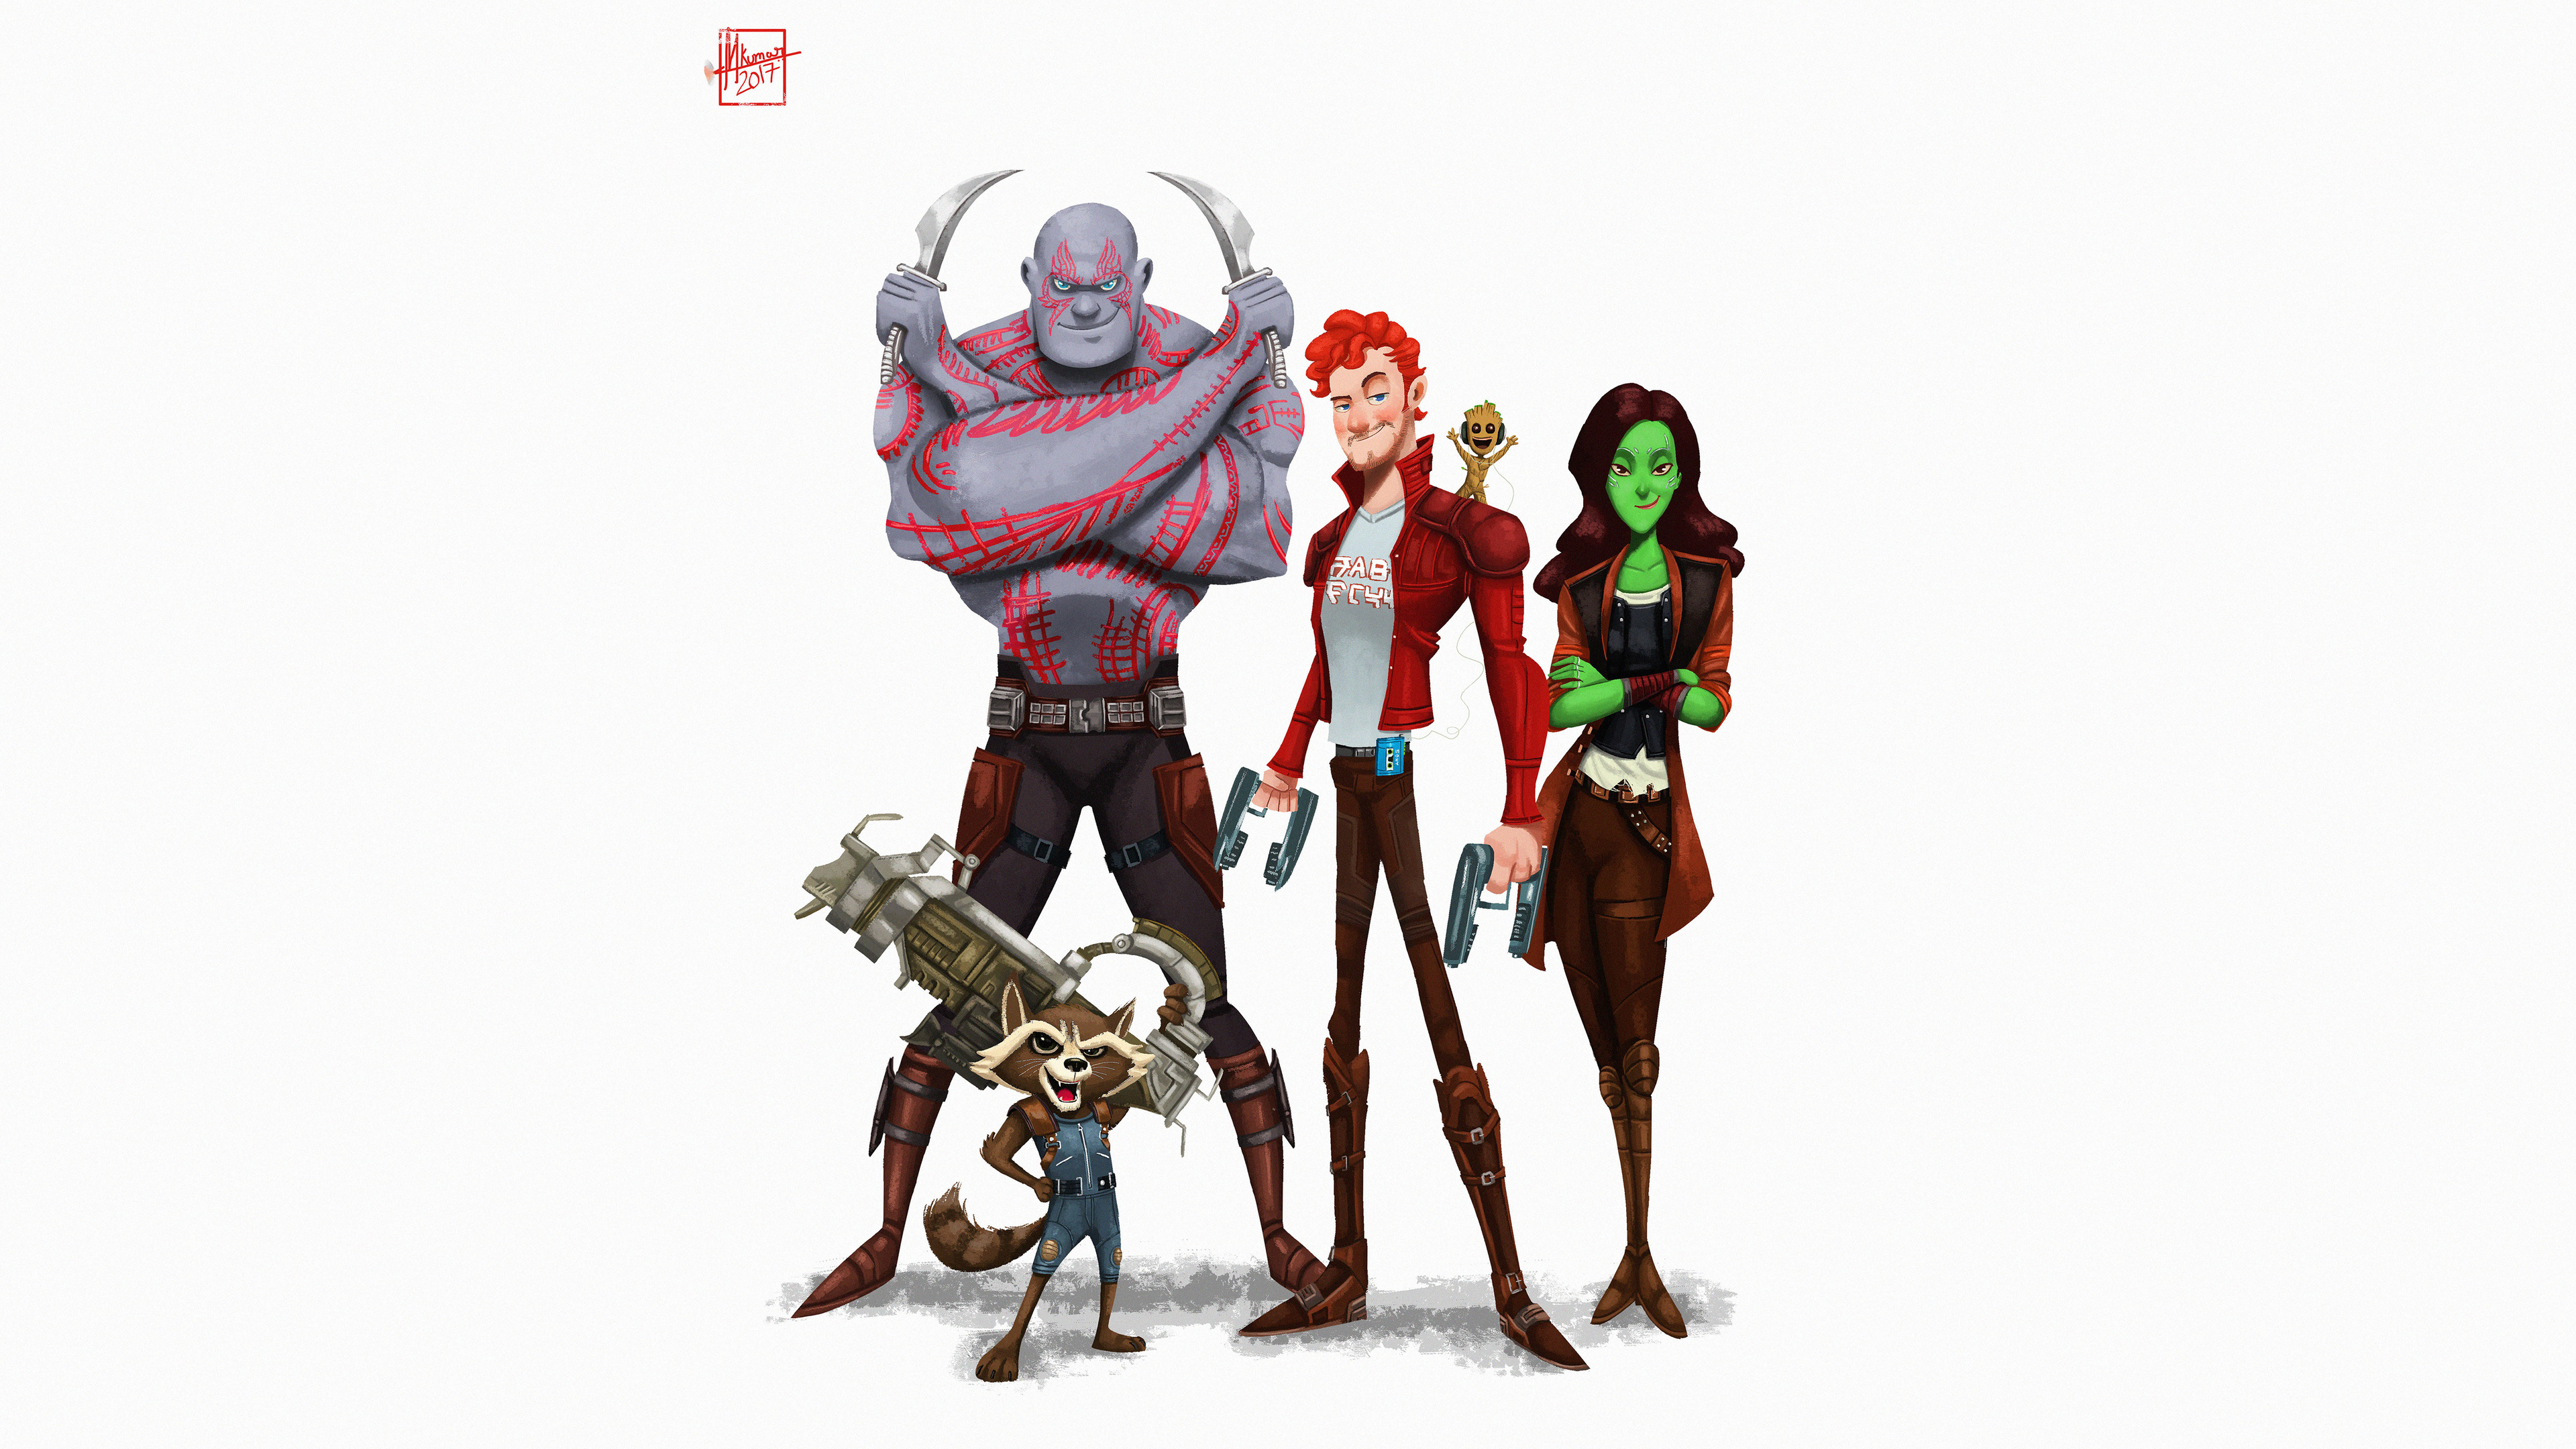 guardians of the galaxy 5k art 1536522199 - Guardians Of The Galaxy 5k Art - star lord wallpapers, rocket raccoon wallpapers, hd-wallpapers, guardians of the galaxy wallpapers, groot wallpapers, gamora wallpapers, drax the destroyer wallpapers, artwork wallpapers, artstation wallpapers, artist wallpapers, 5k wallpapers, 4k-wallpapers